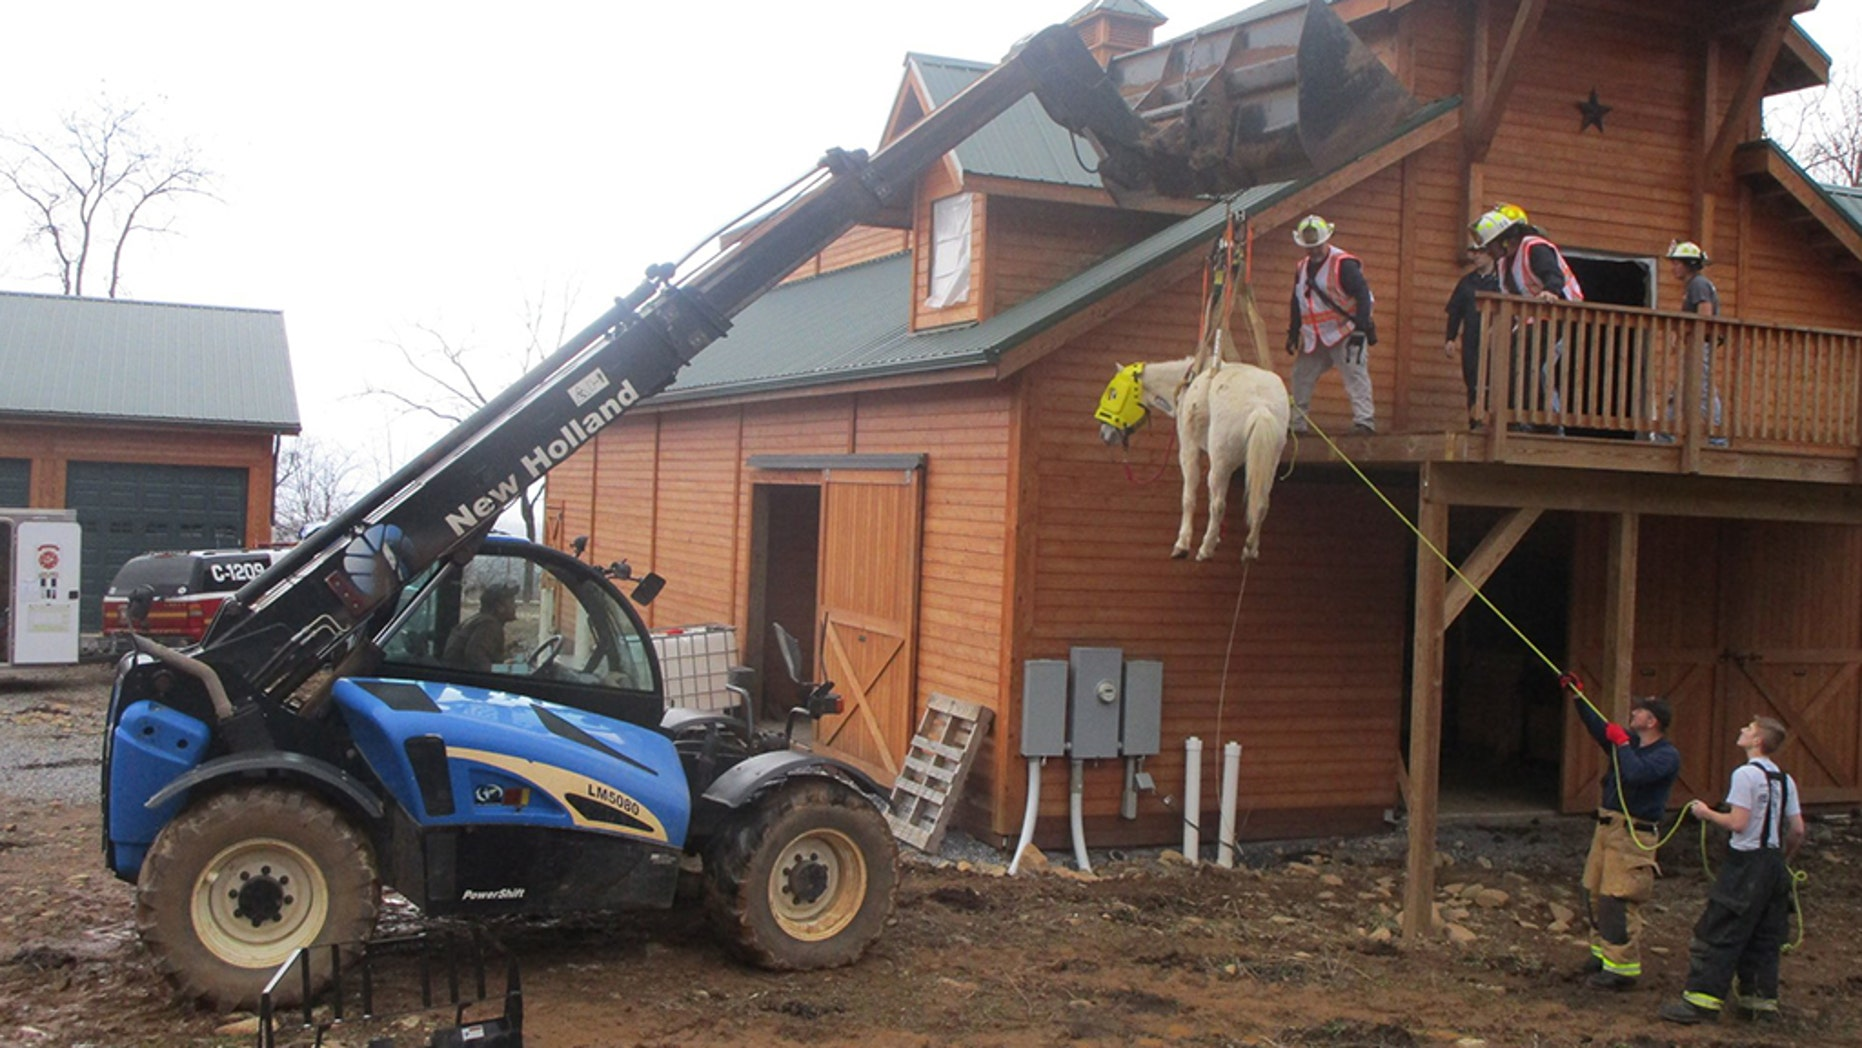 Holly, a 12-year-old Welsh Percheron cross pony, had to be rescued after getting stuck in a hayloft in Virginia.